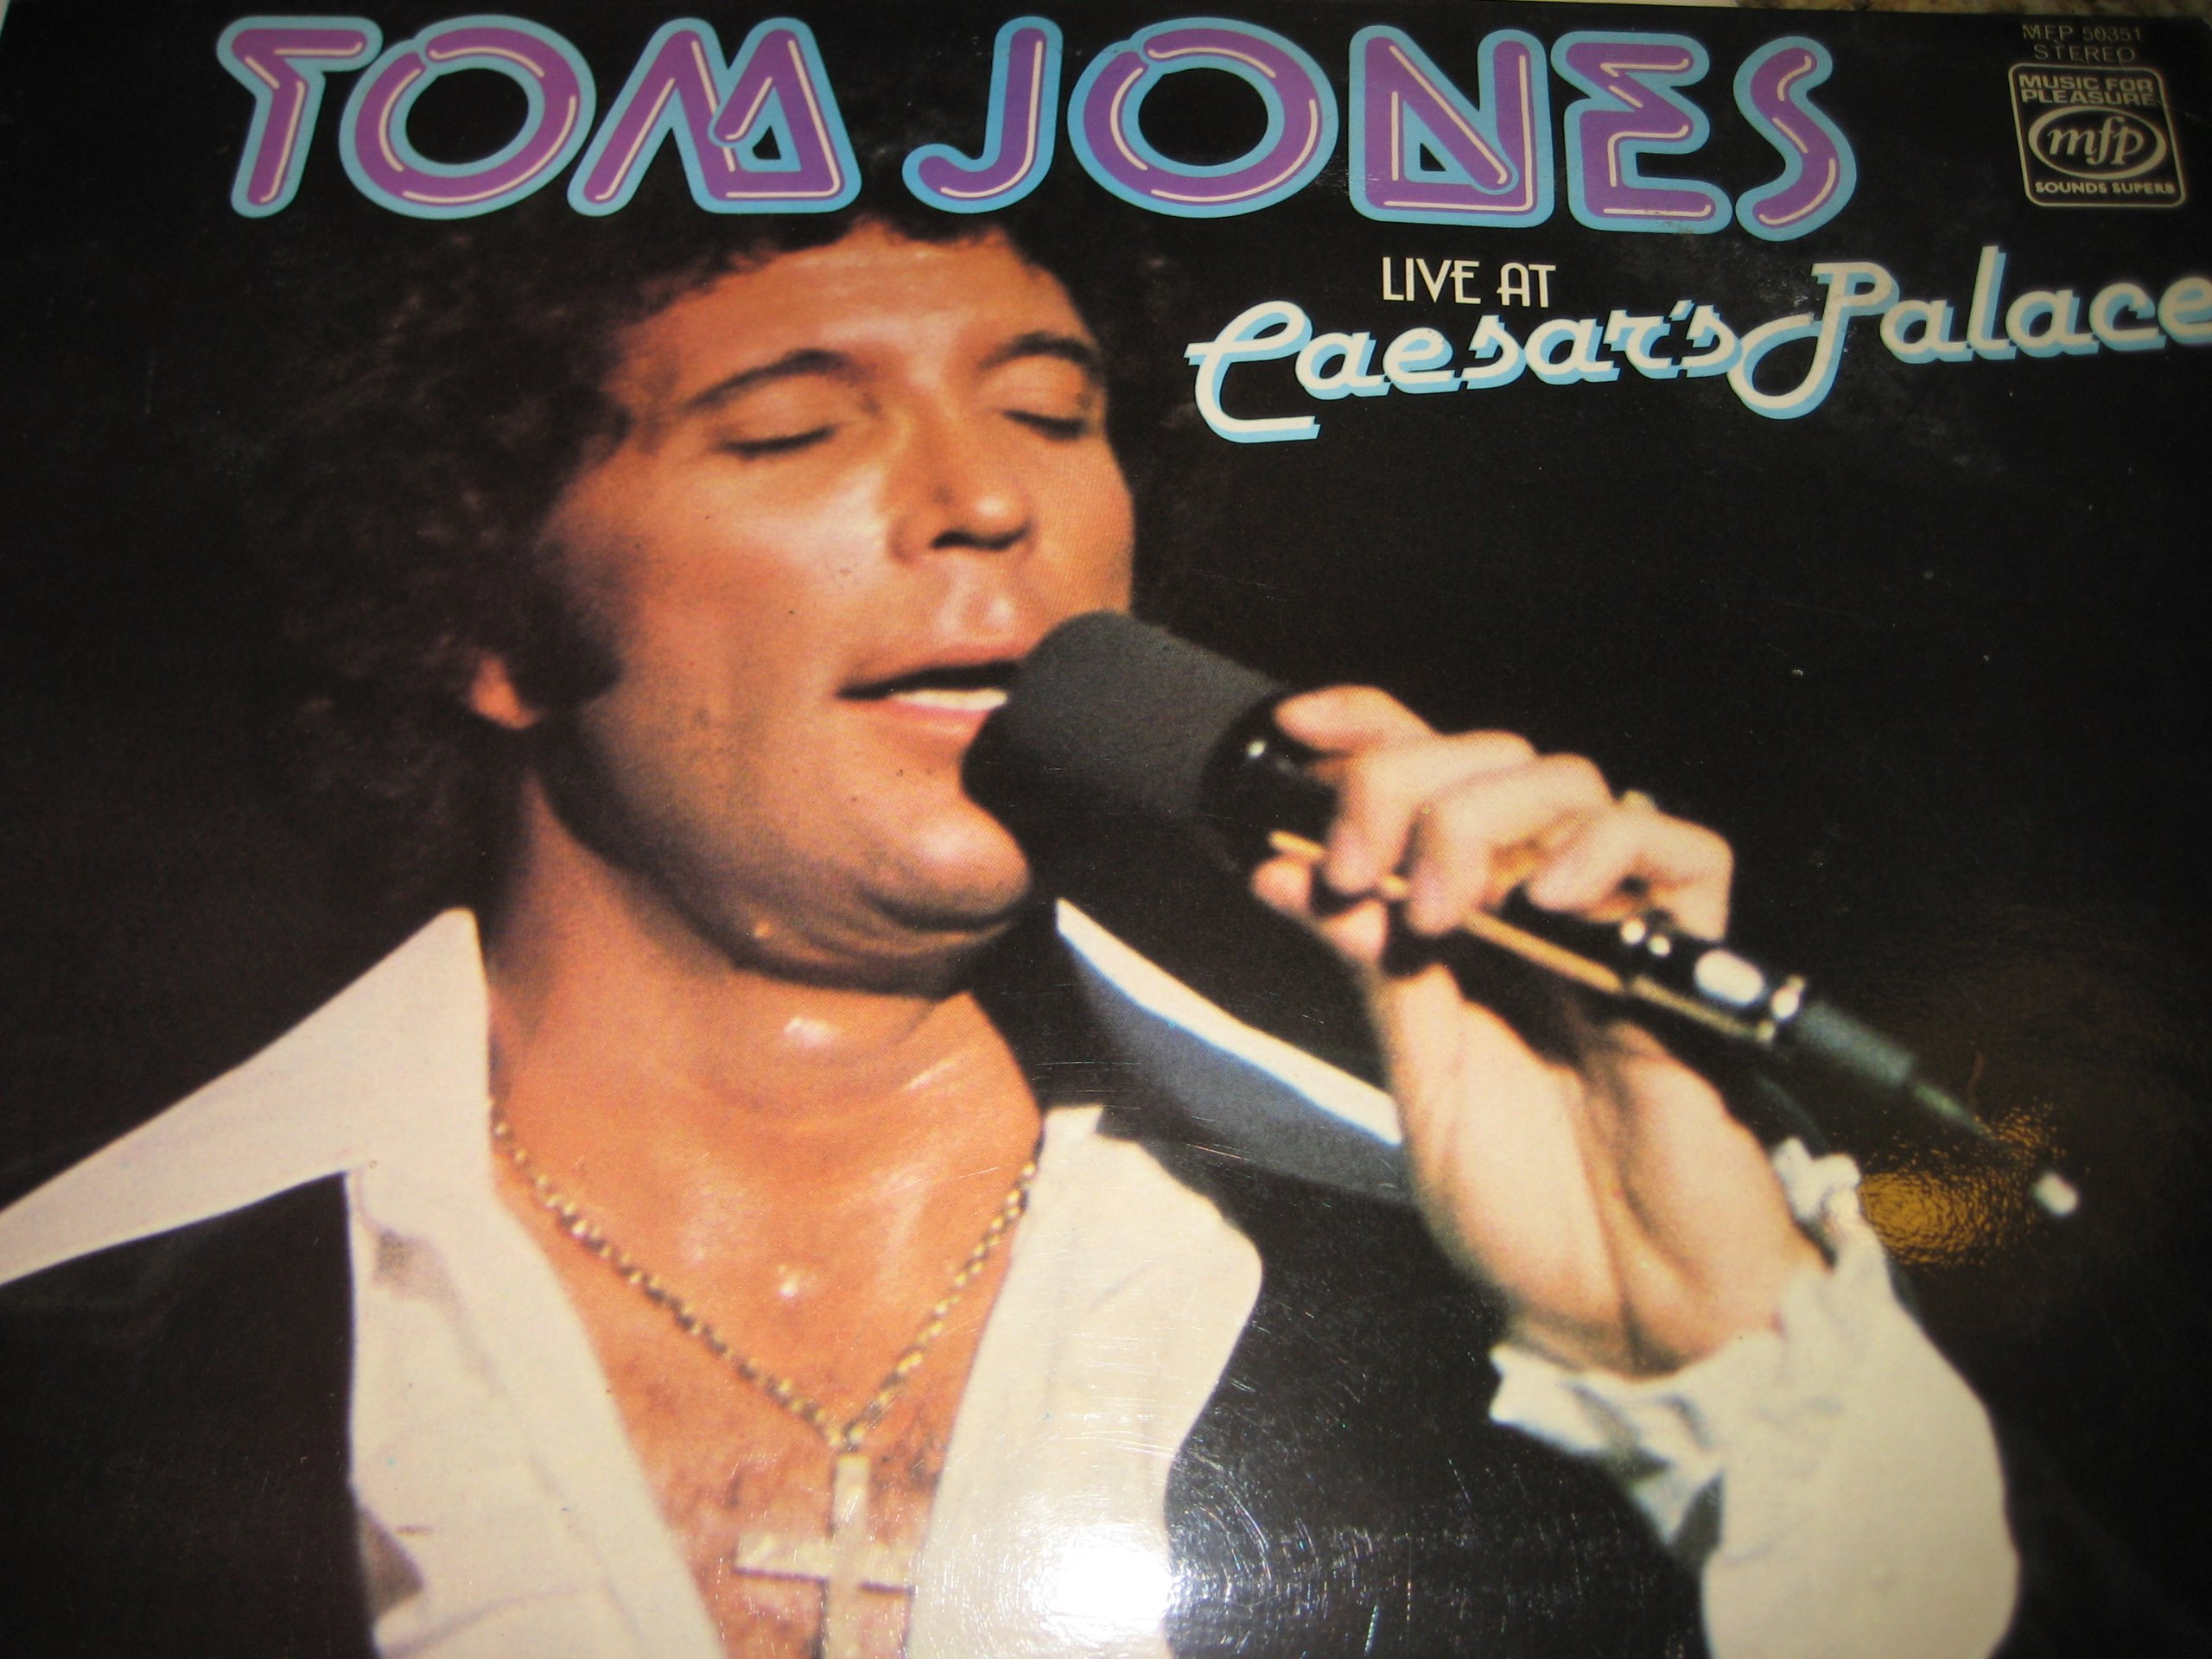 Tom Jones Live at Caesar's Palace [Rare Music For Pleasure Label] by Music for Pleasure